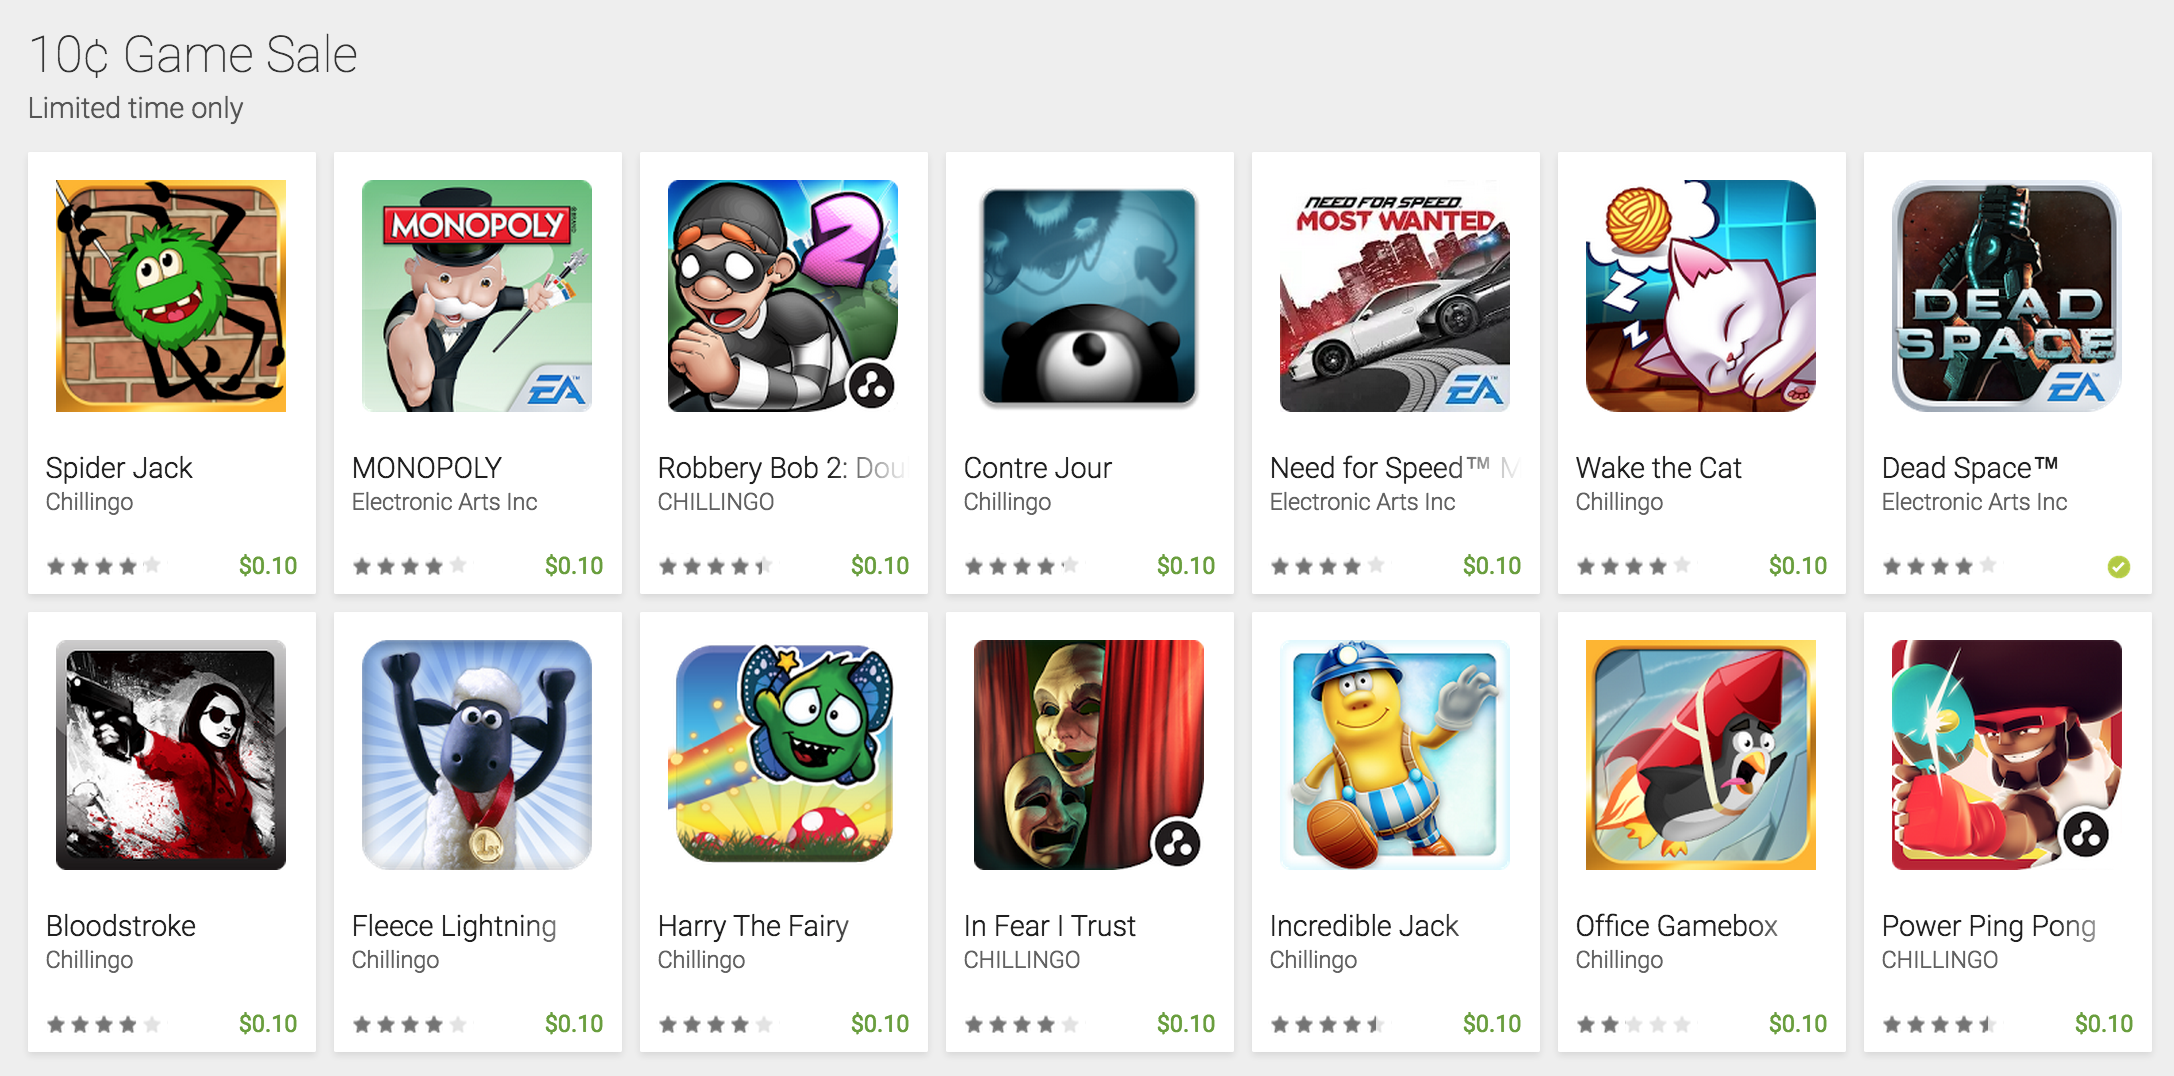 14 Android games marked down to 10 cents on Google Play